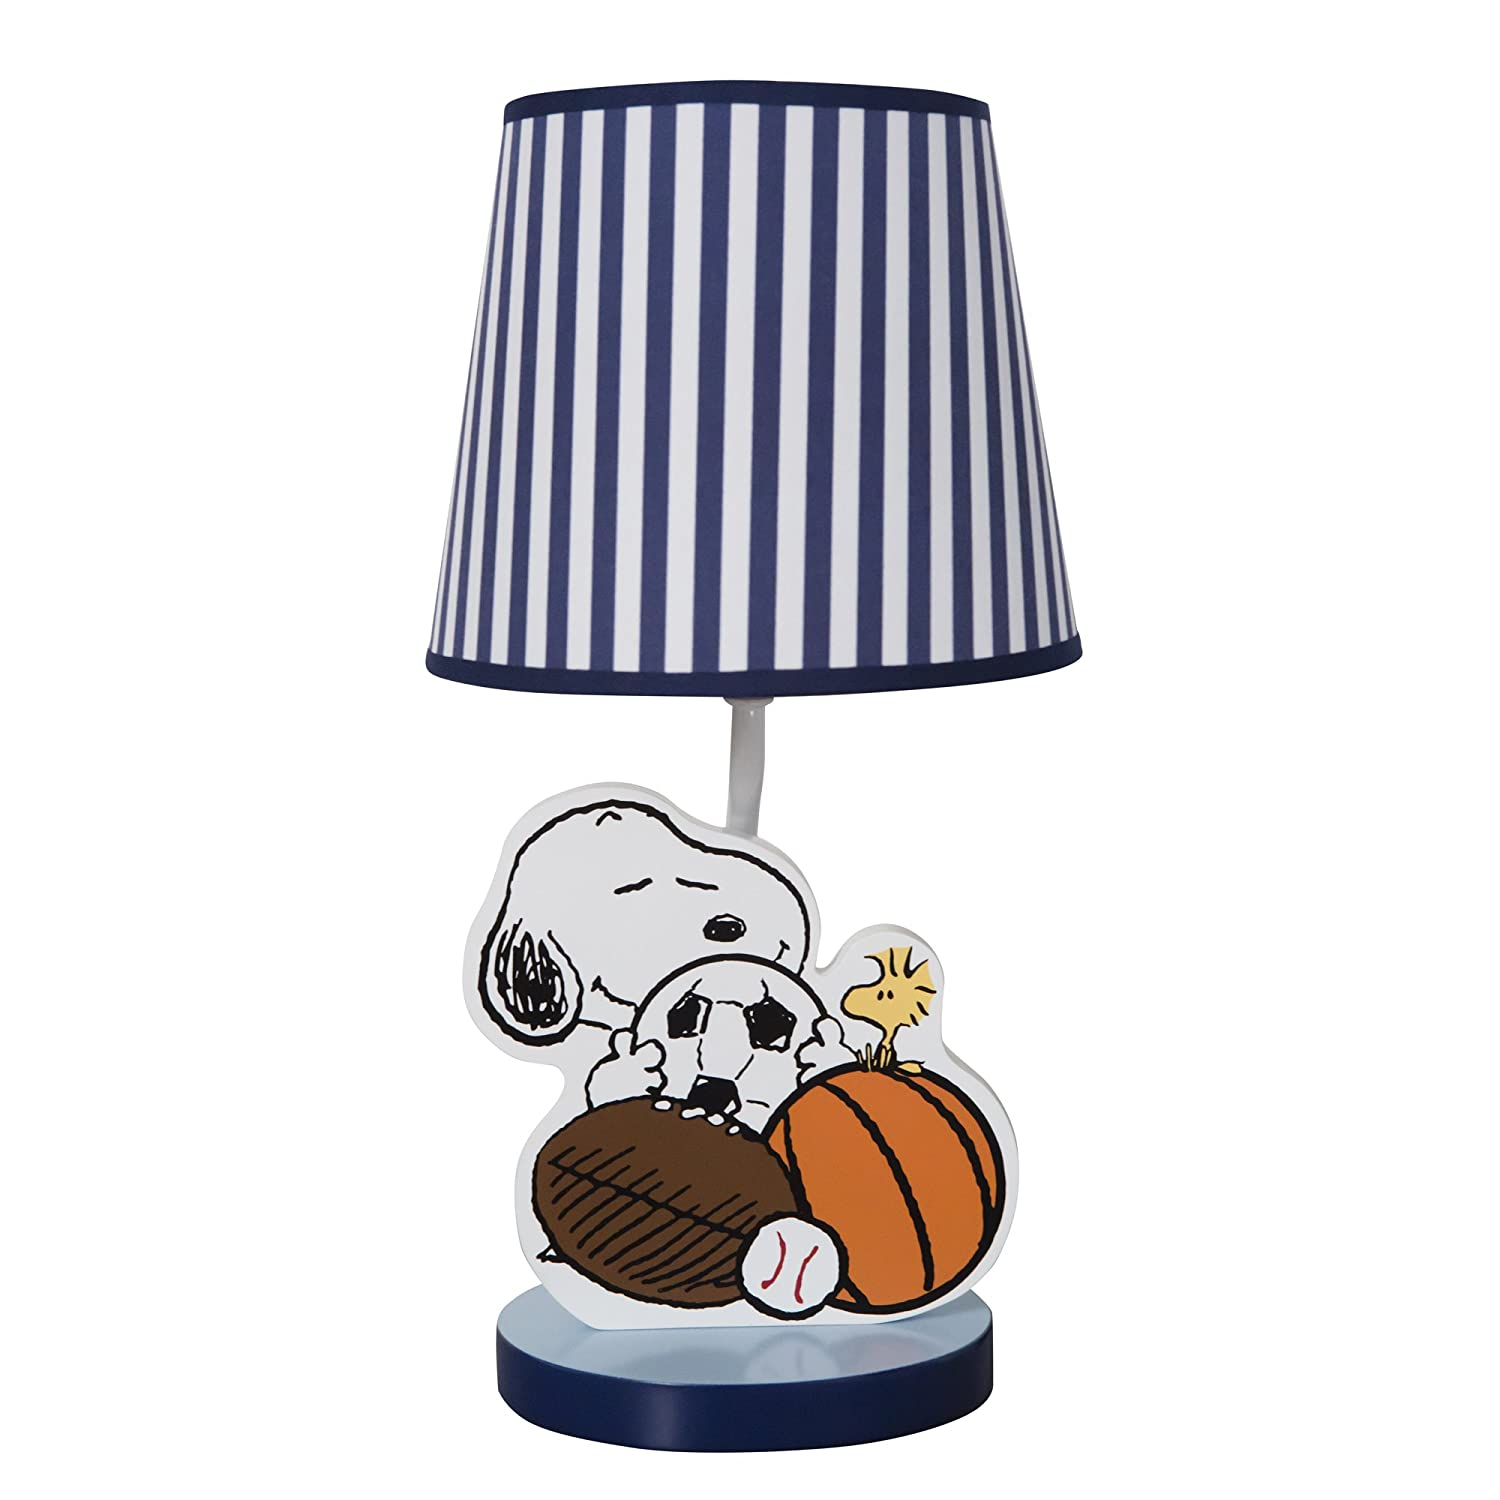 Bedtime Originals Snoopy Sports Lamp with Shade and Bulb Lambs & Ivy 252024B